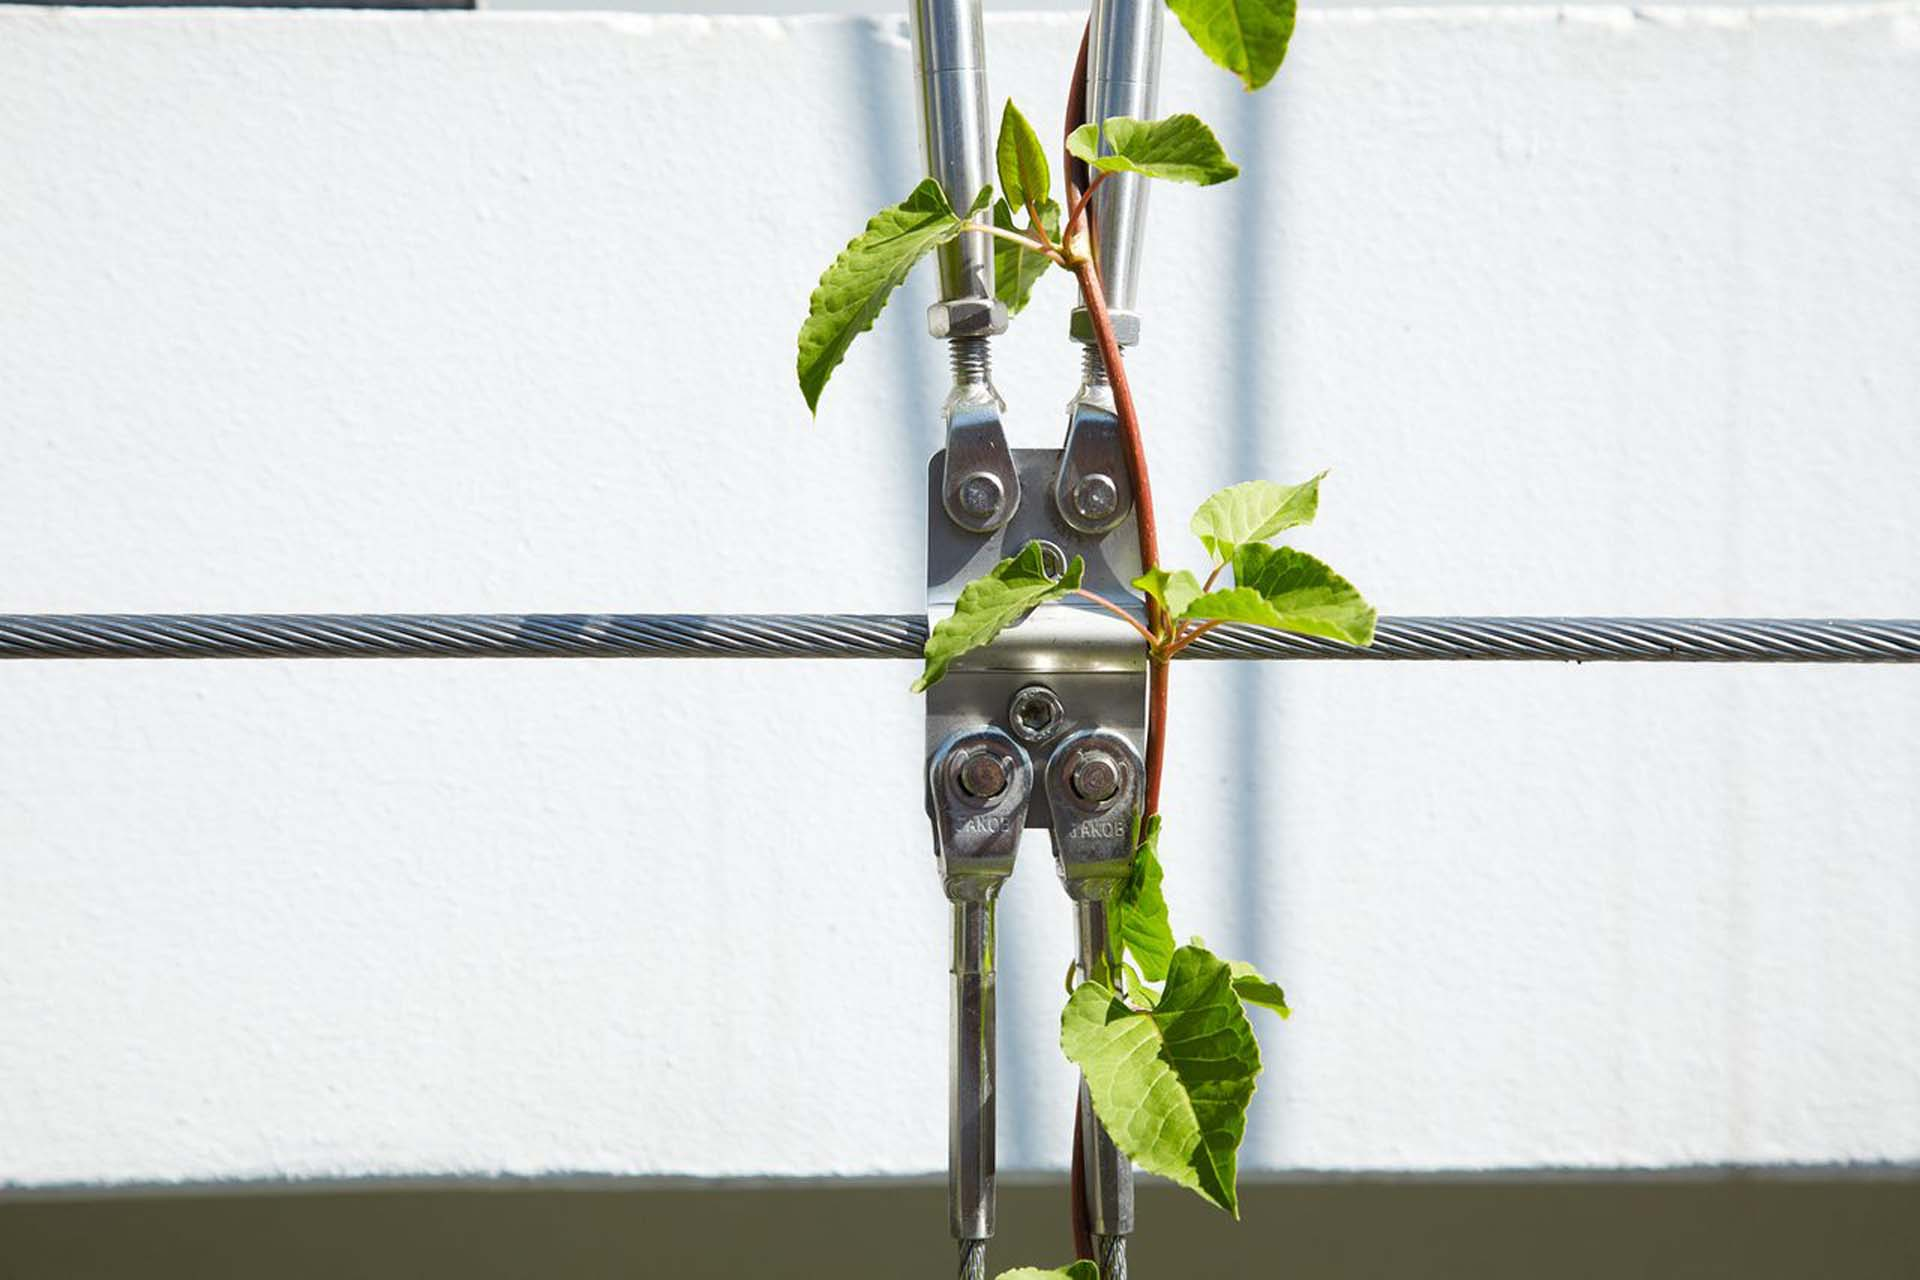 A plant climbing on steel cable and cable connector